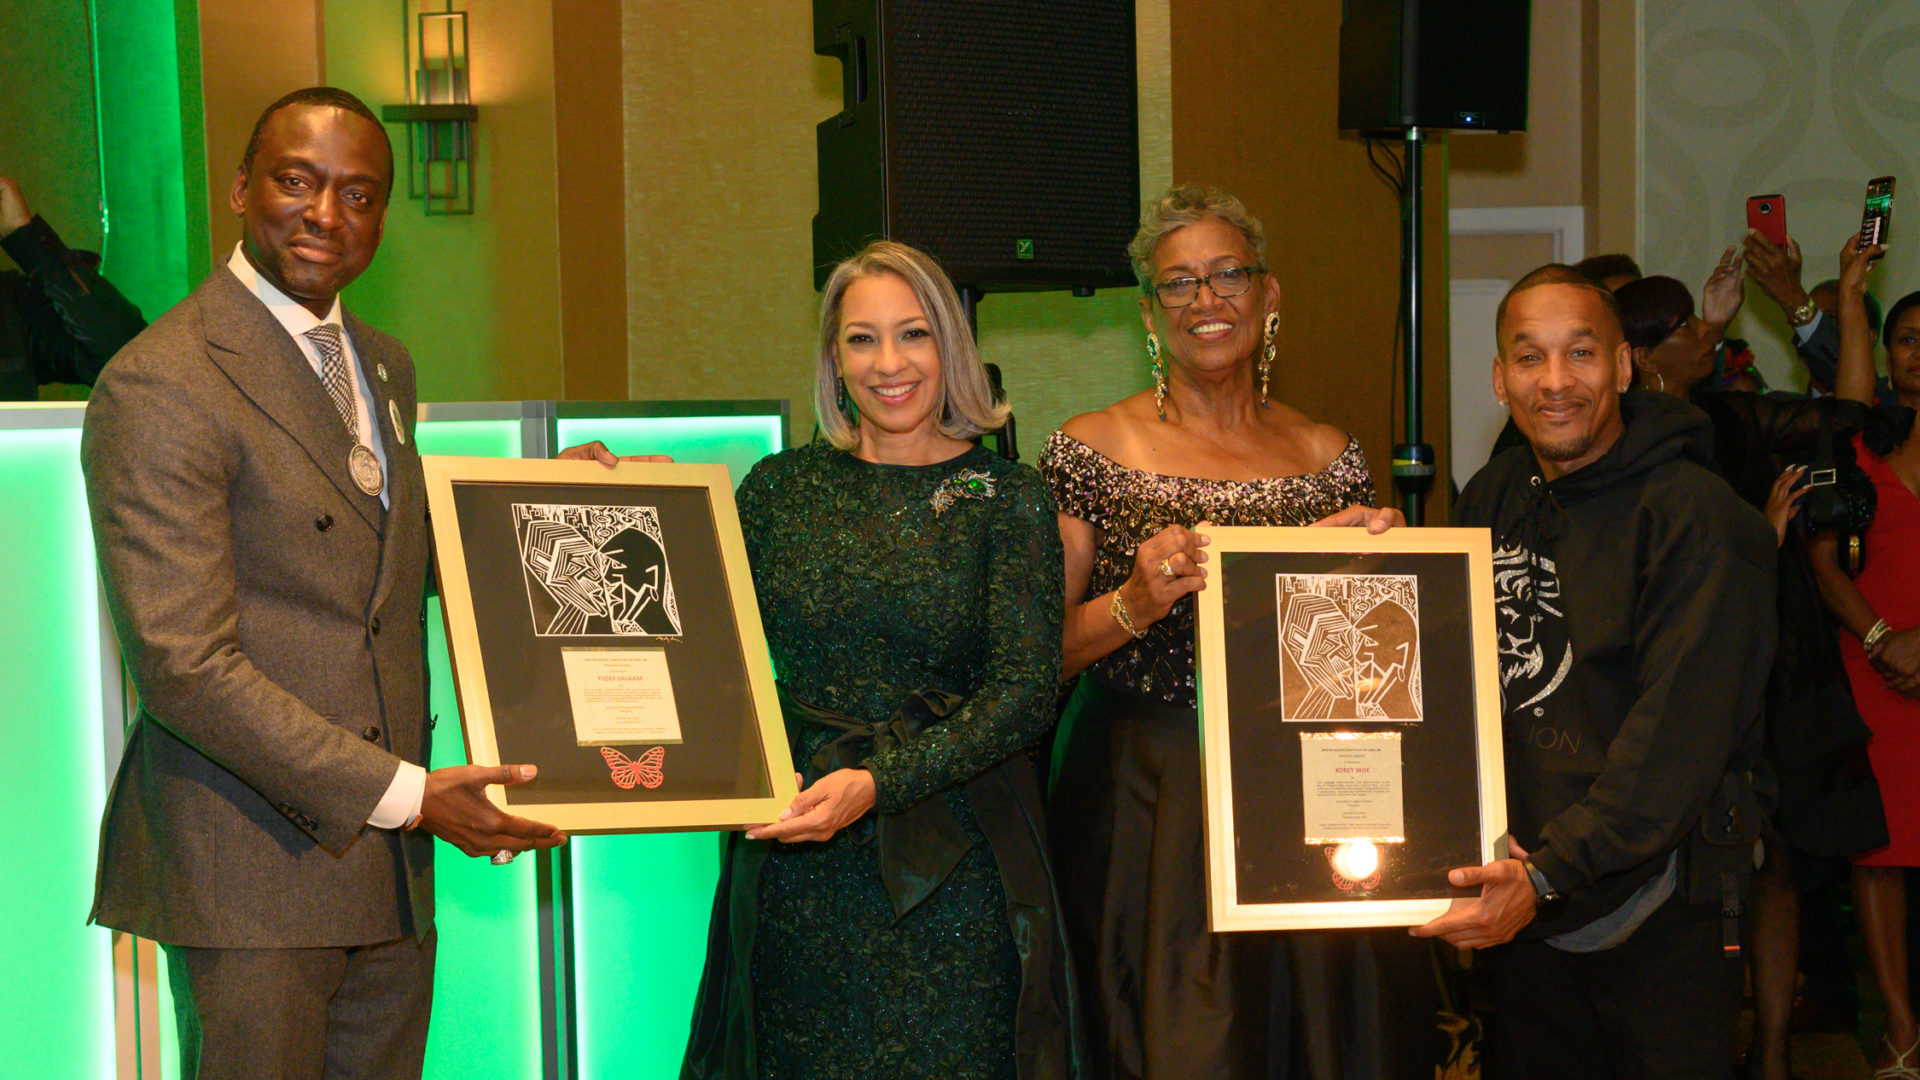 """The Links, Incorporated Honor """"The Exonerated 5"""" At 23rd Annual Masquerade Ball"""